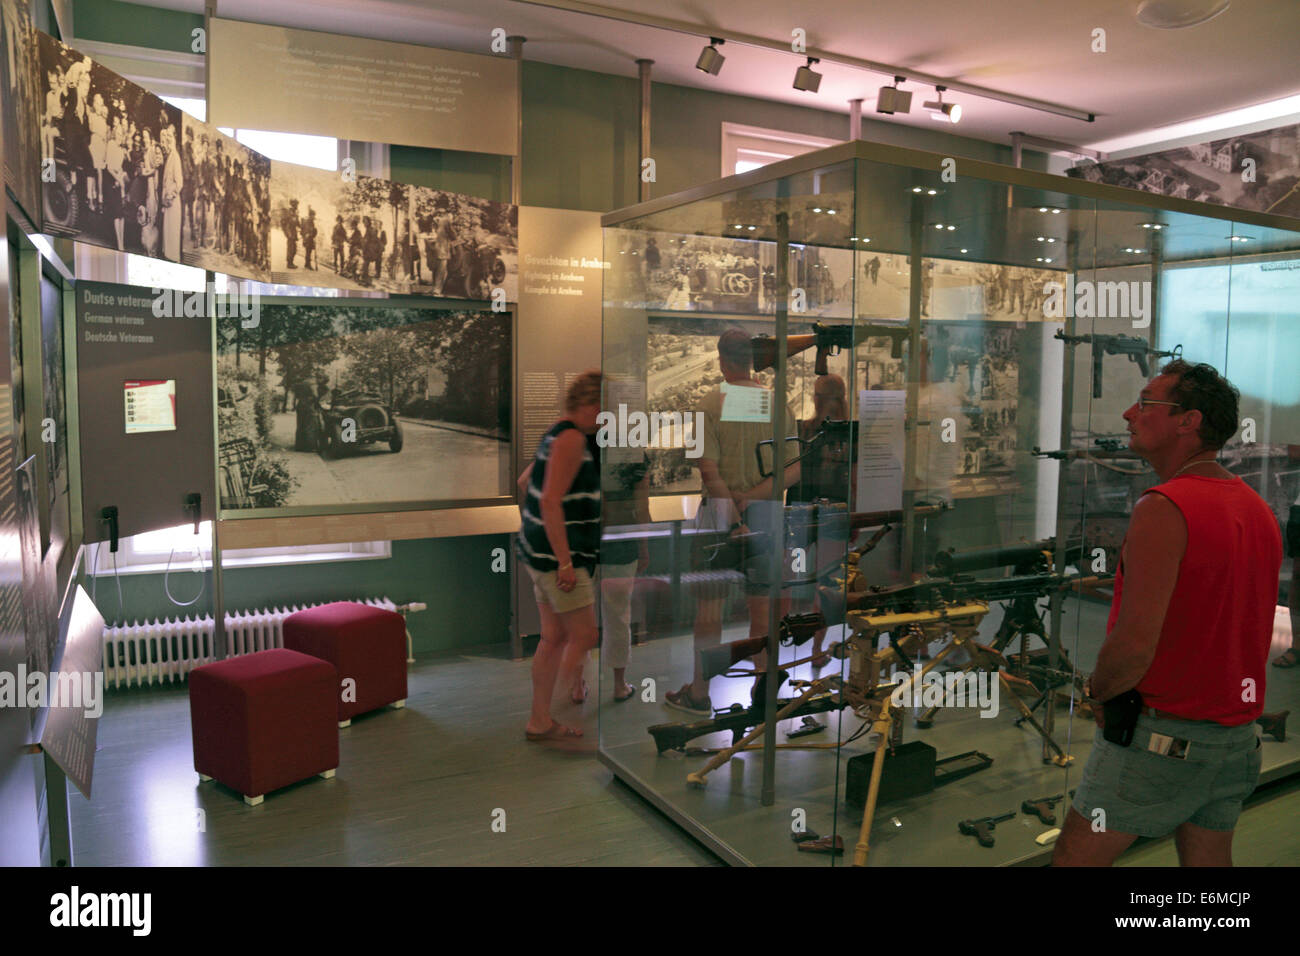 general view of displays in the Airborne Museum, Hartenstein hotel, Oosterbeek, Netherlands. - Stock Image